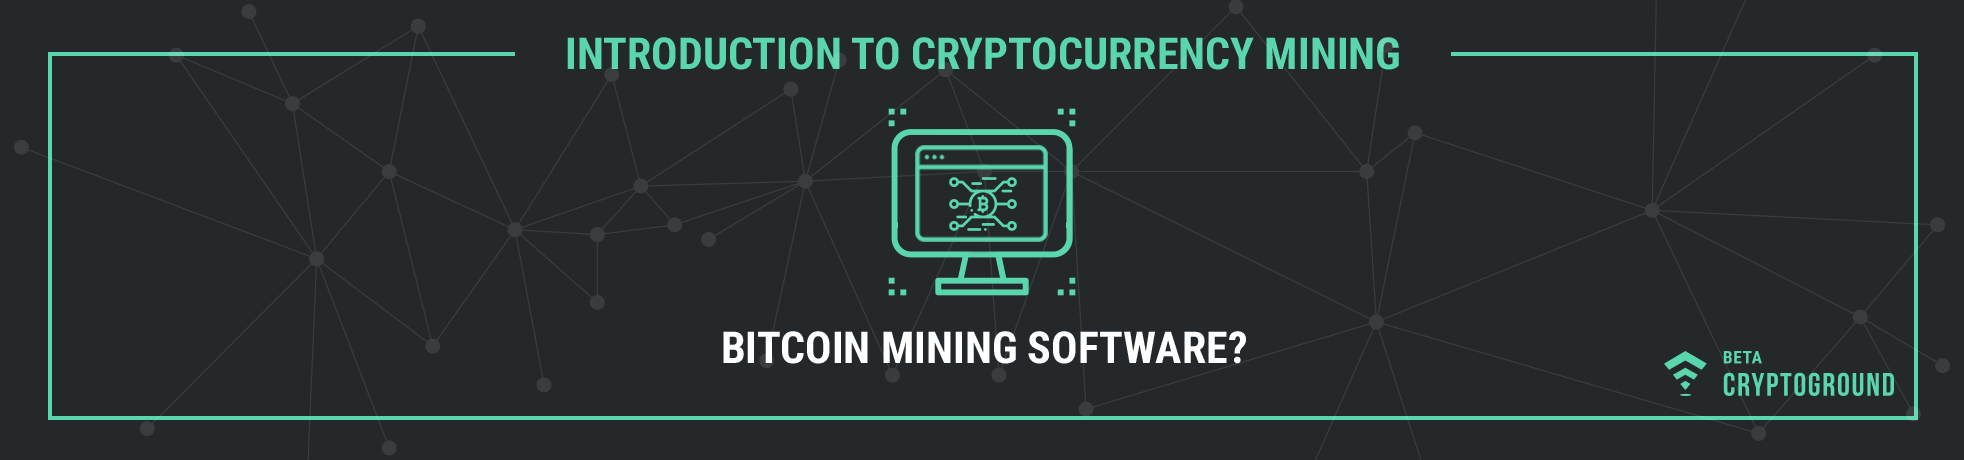 Bitcoin Mining Software?